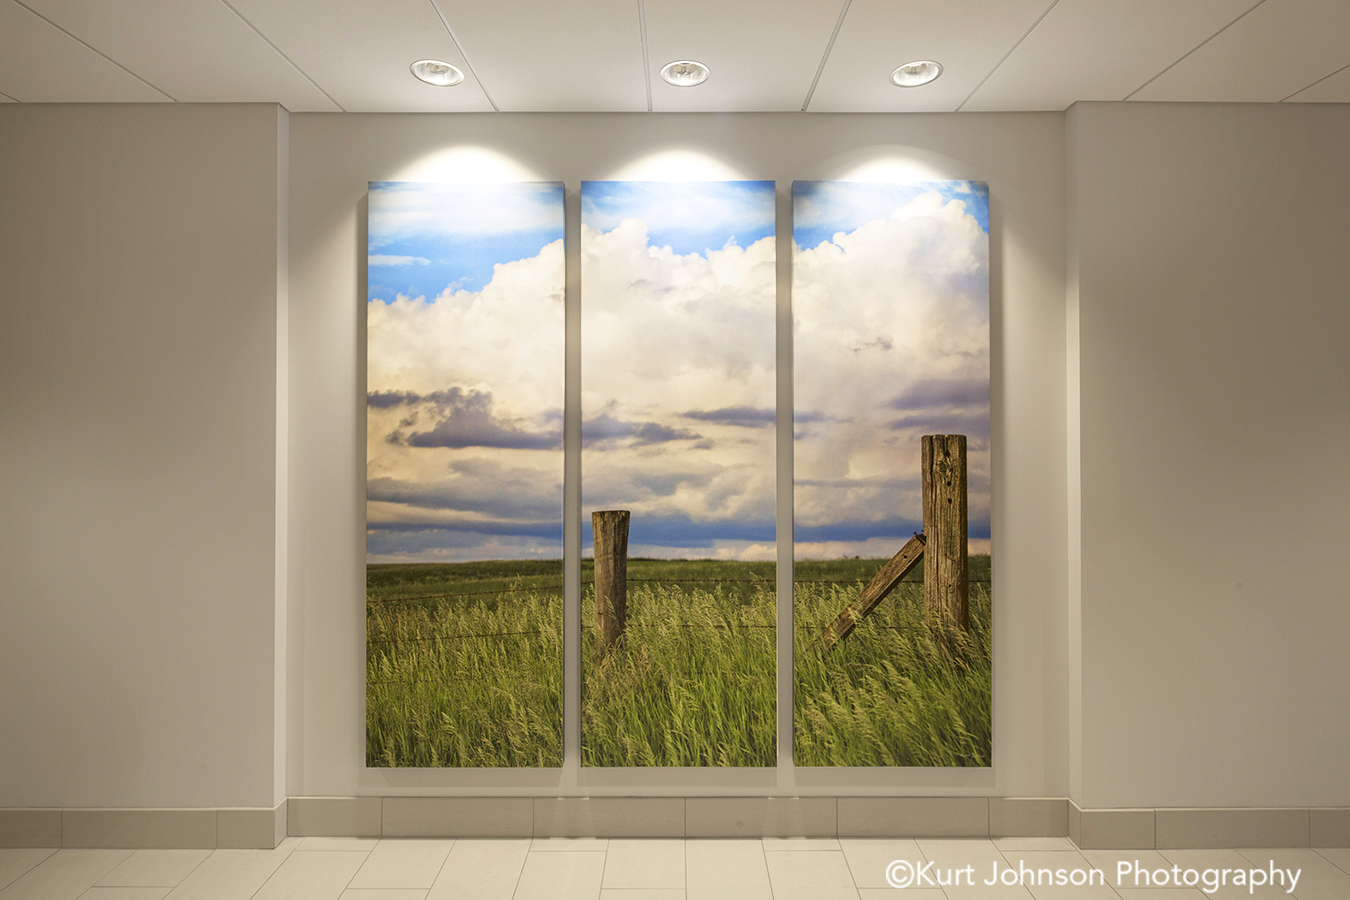 Brooking SD install gallery wrapped split canvas healthcare wall installation 3 panel triptych landscape